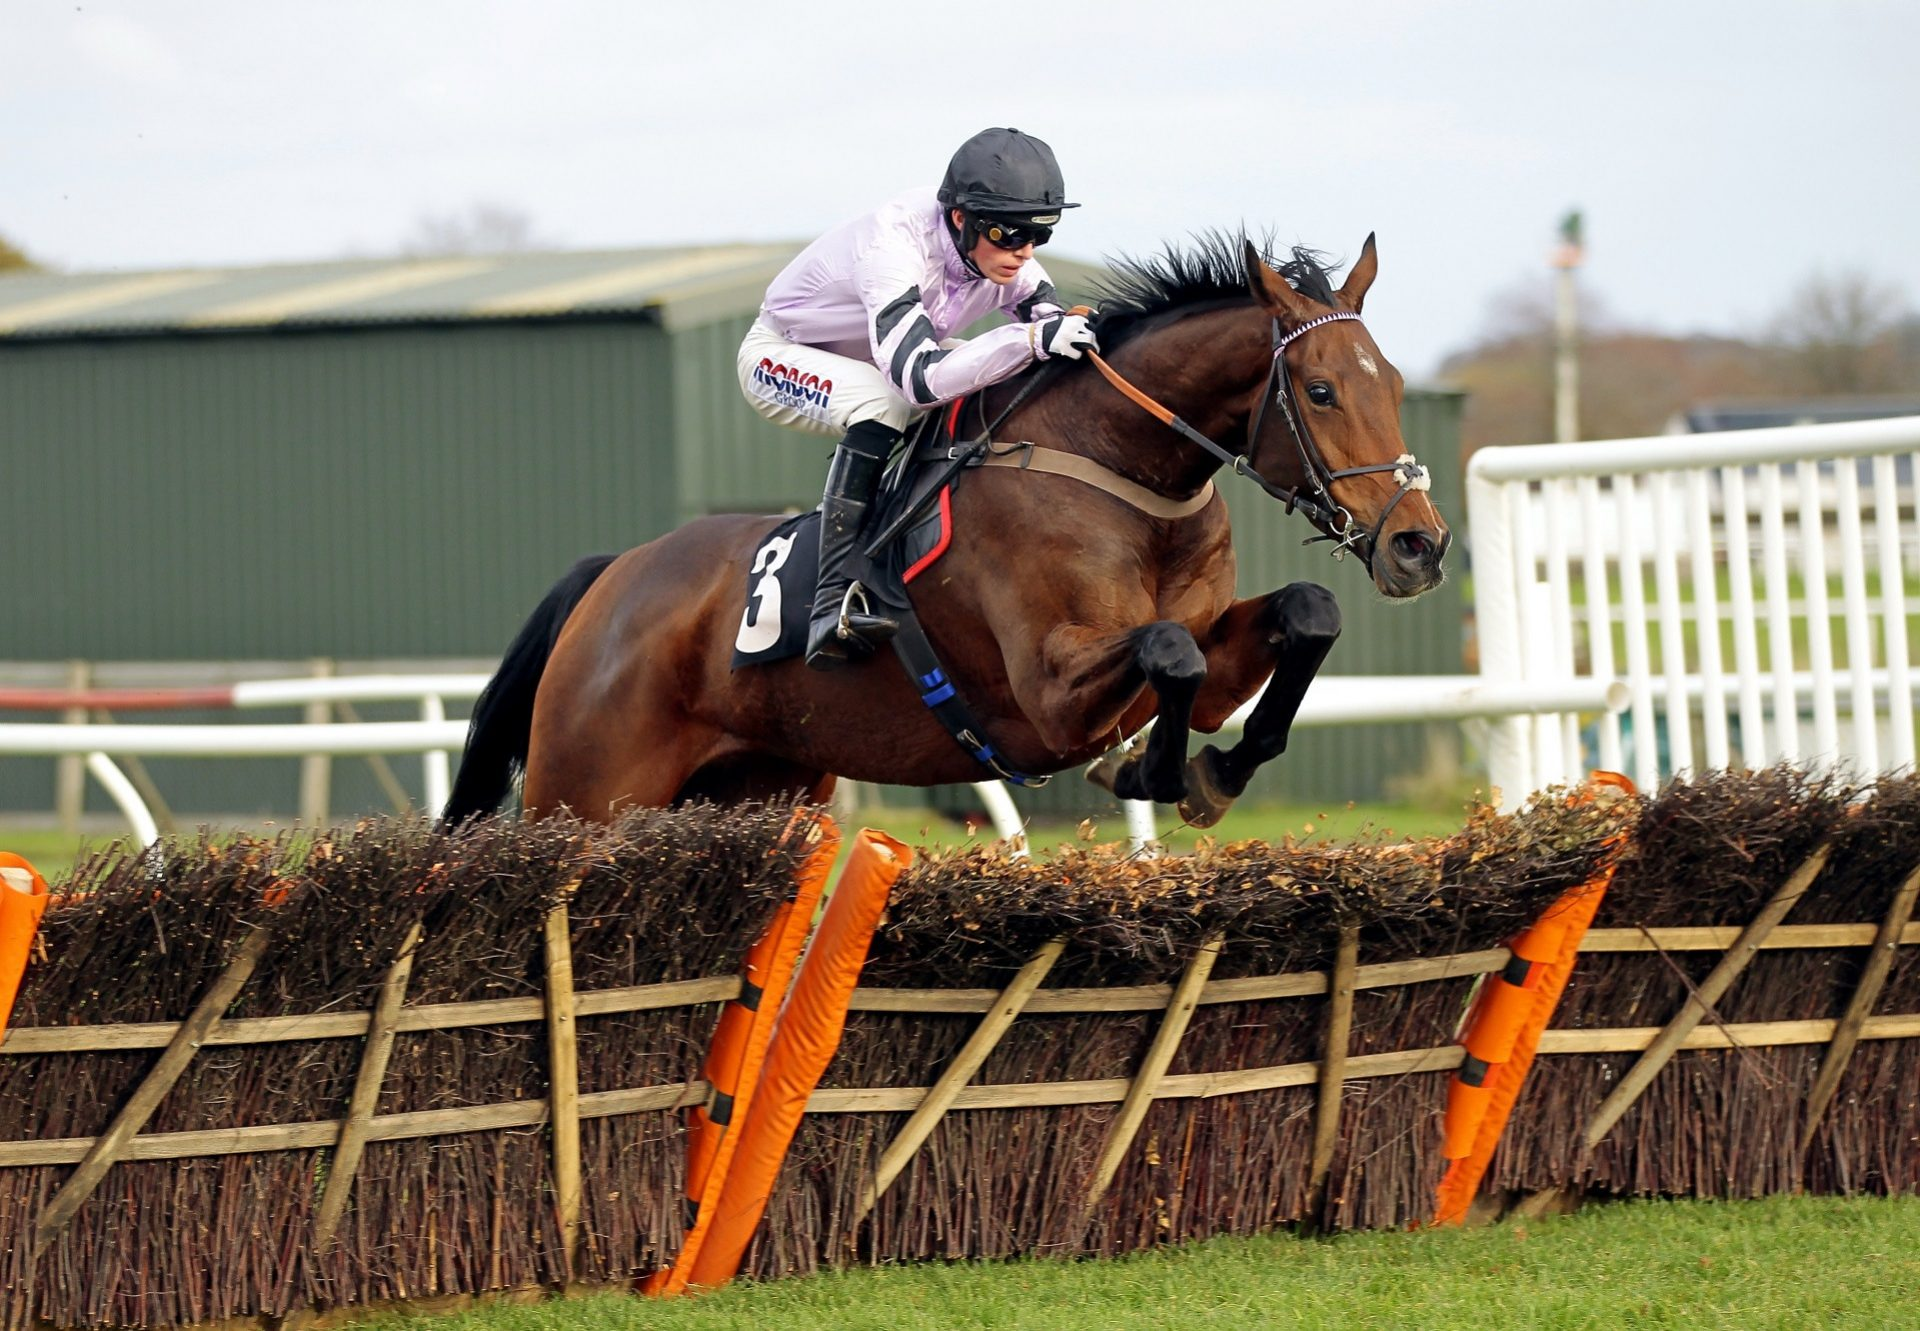 Getaway Trump (Getaway) winning over hurdles at Exeter